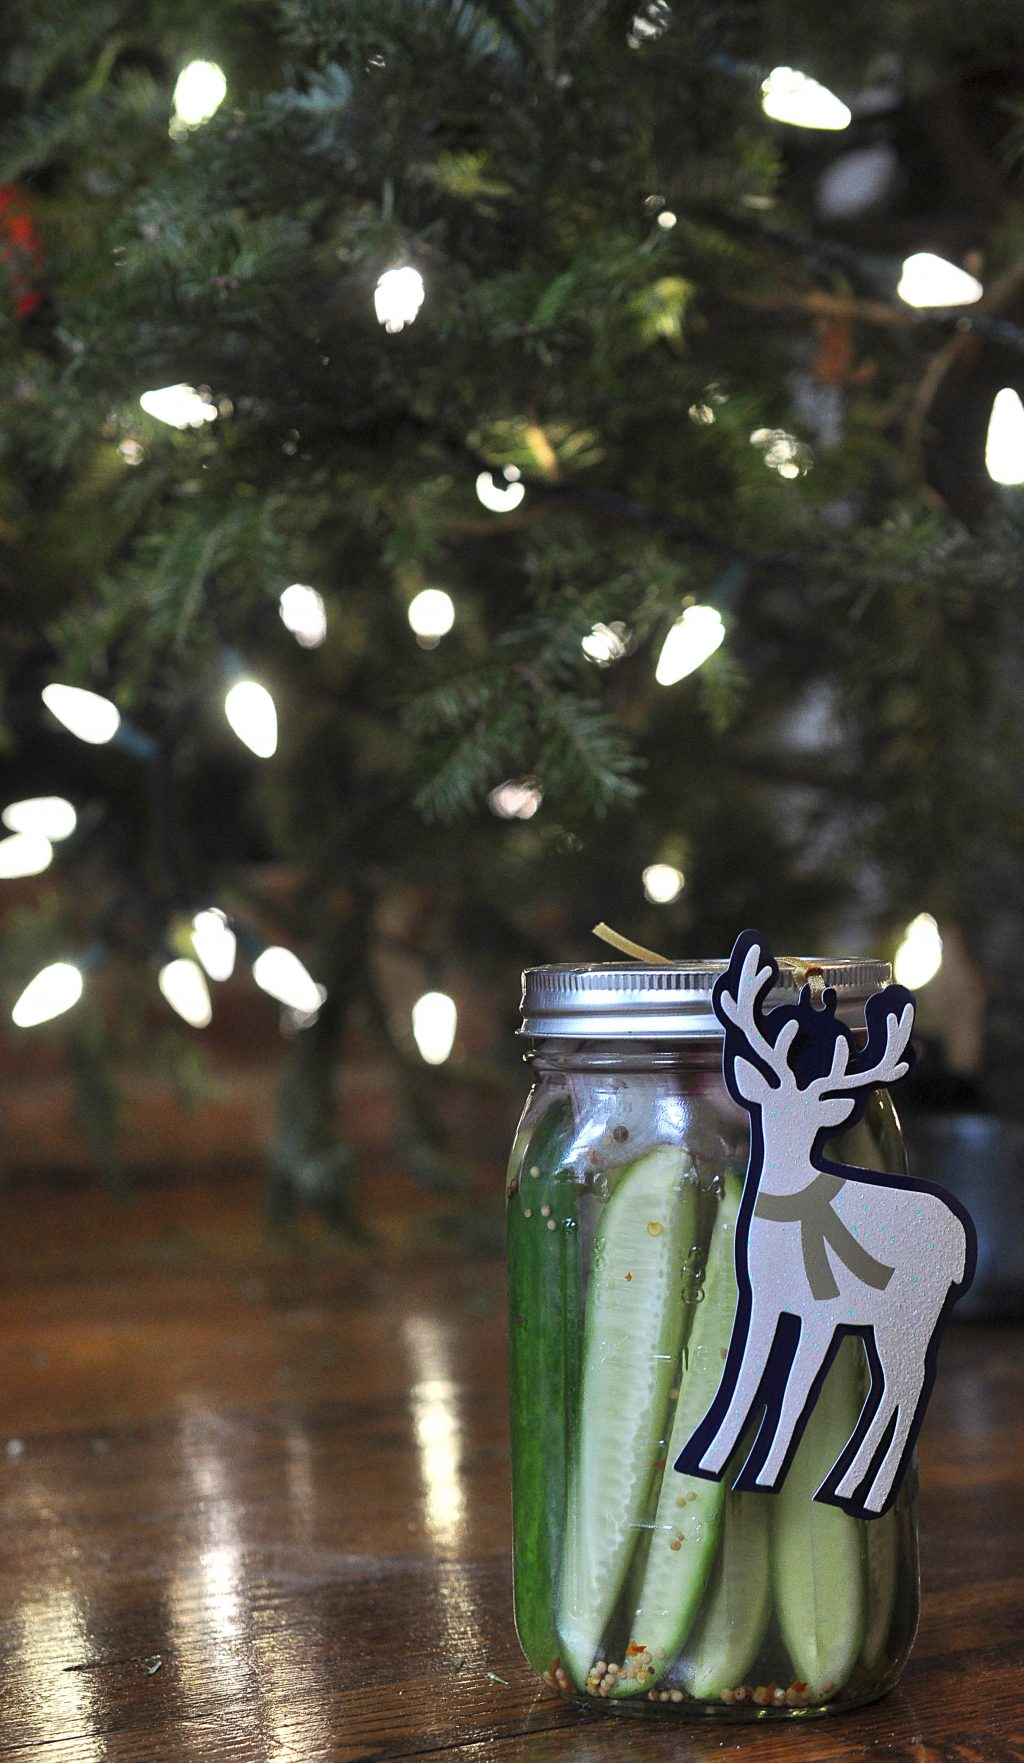 jar of pickles under the Xmas tree